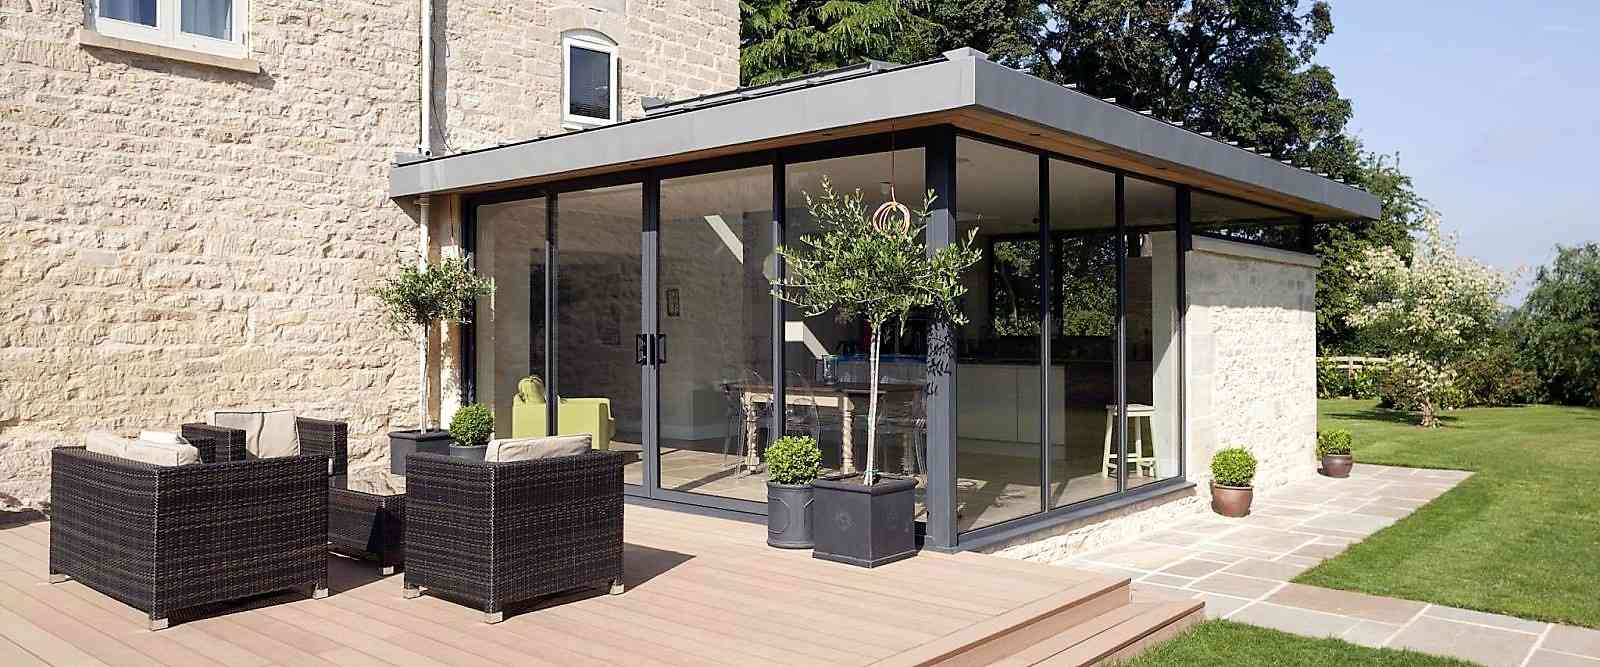 Maximise light and get stunning unimpeded views with these dynamic residential sliding patio doors. & Aluminium Sliding Patio Doors | Marlin Windows Yorkshire